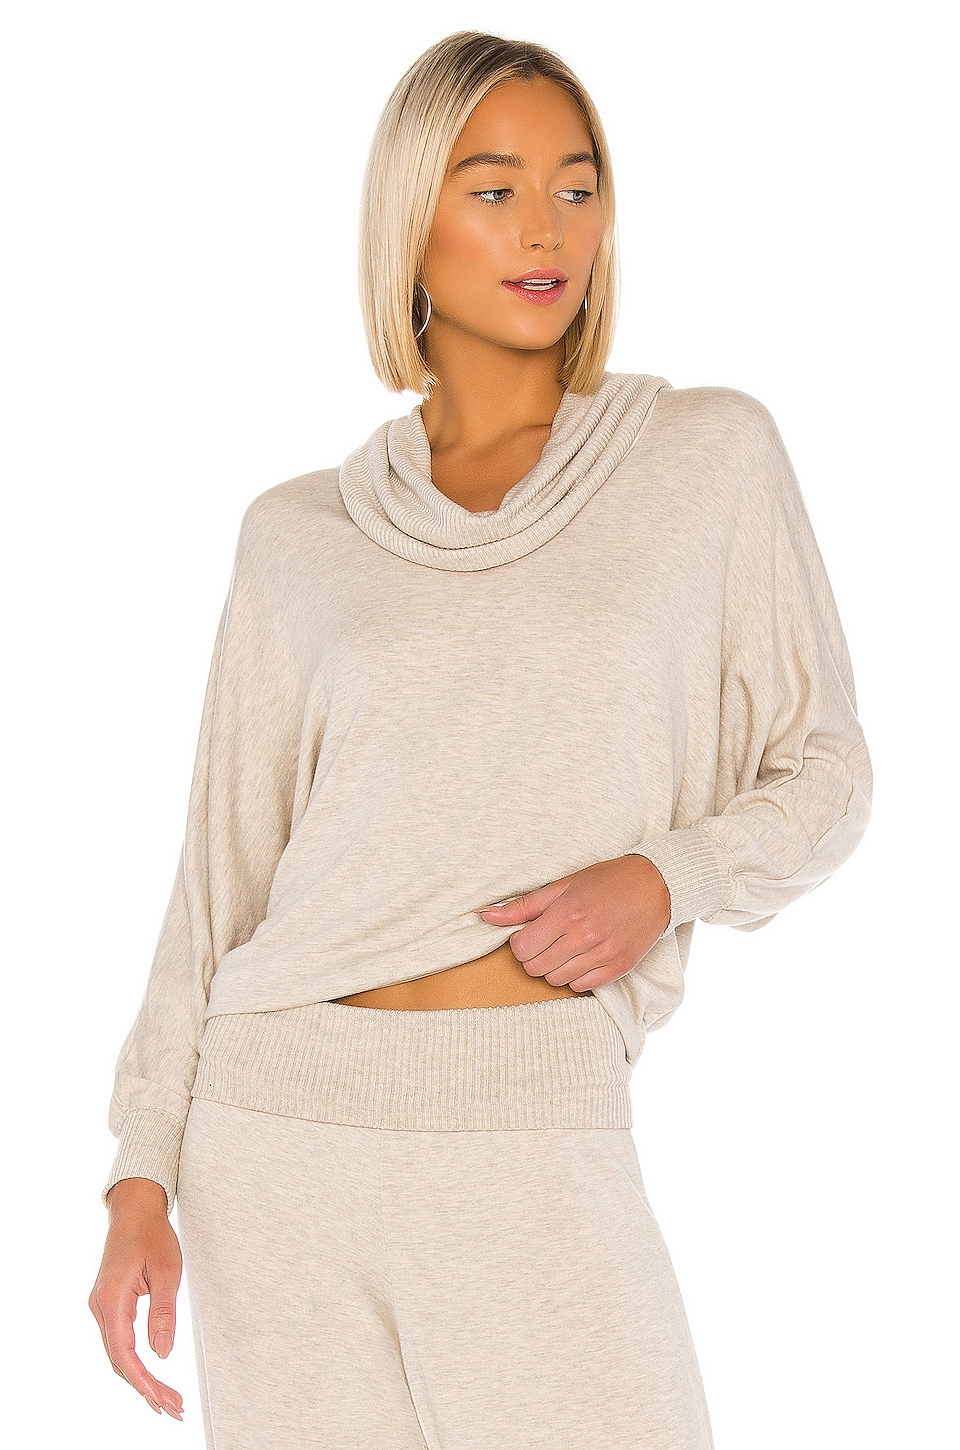 Splendid Super Soft Rib Sweater in Heather Oatmeal